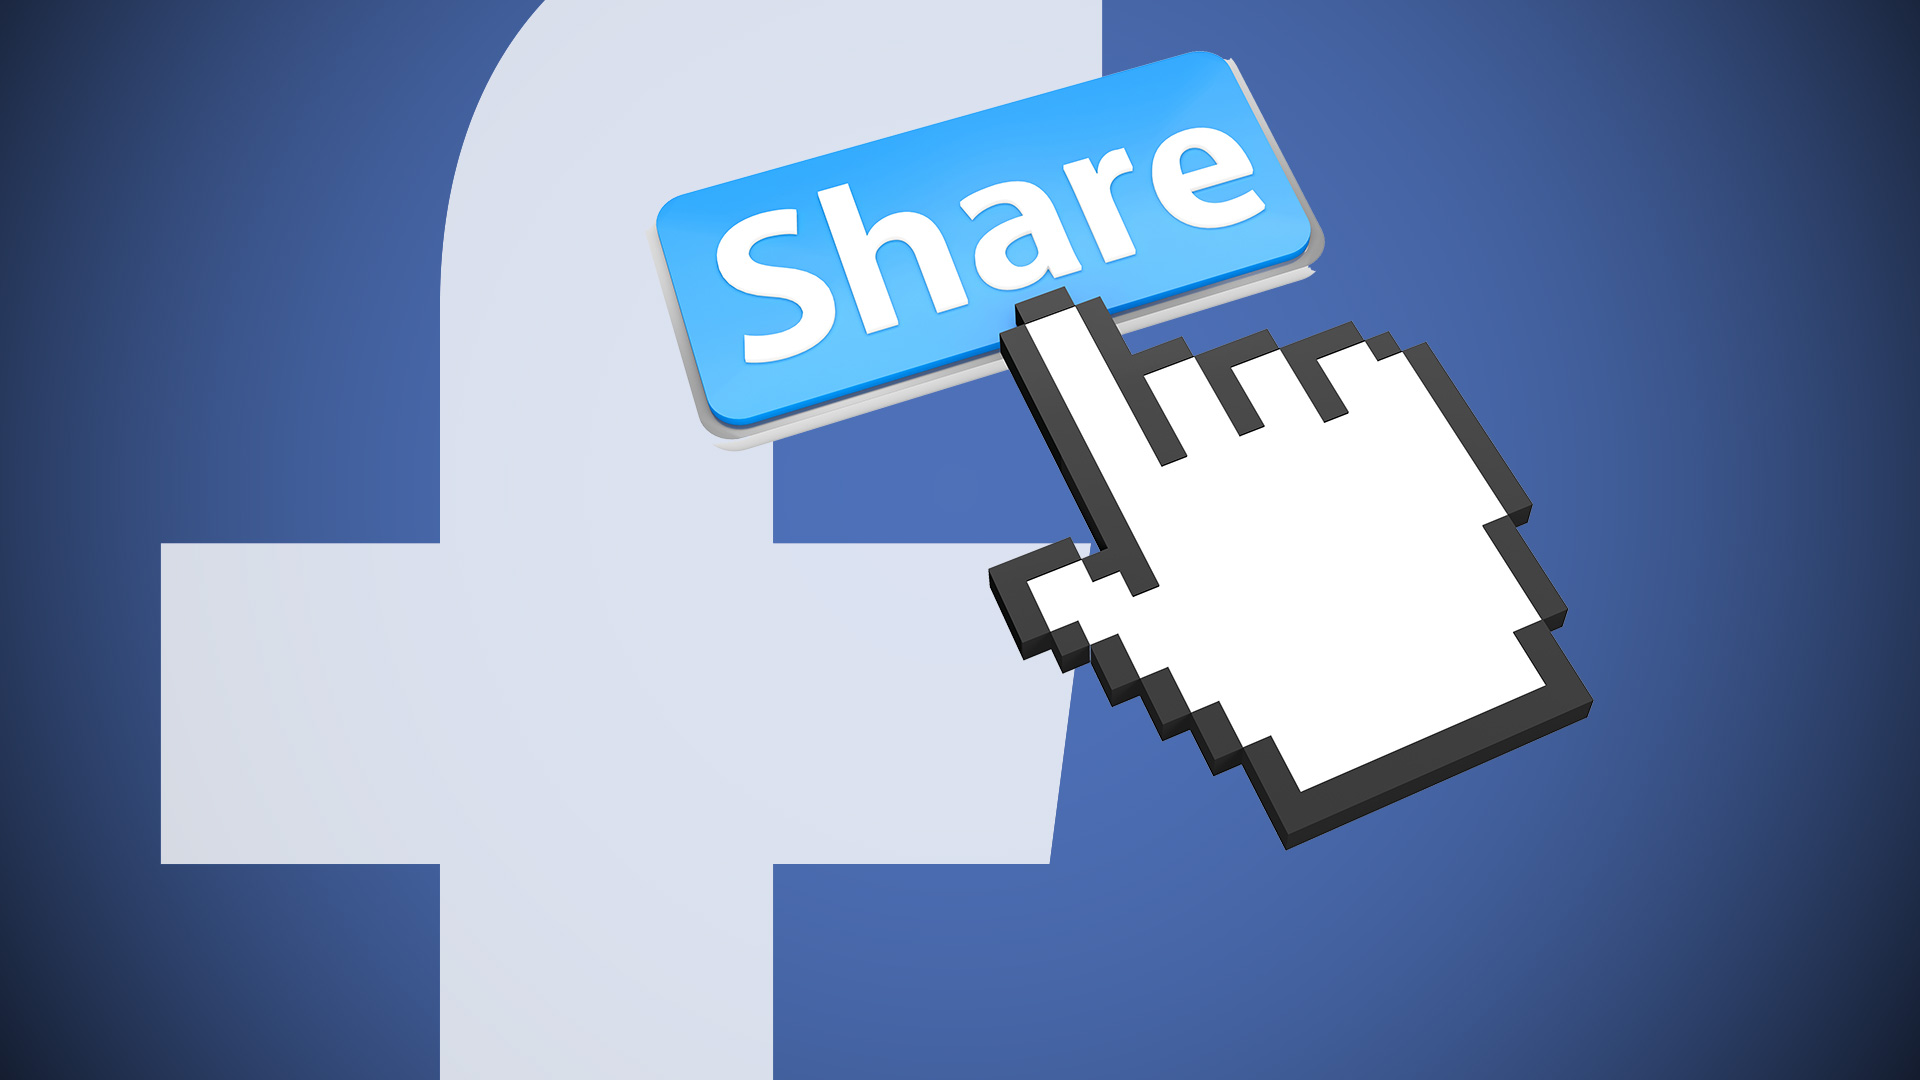 Facebook Shares User Data With Apple Microsoft & Amp Co